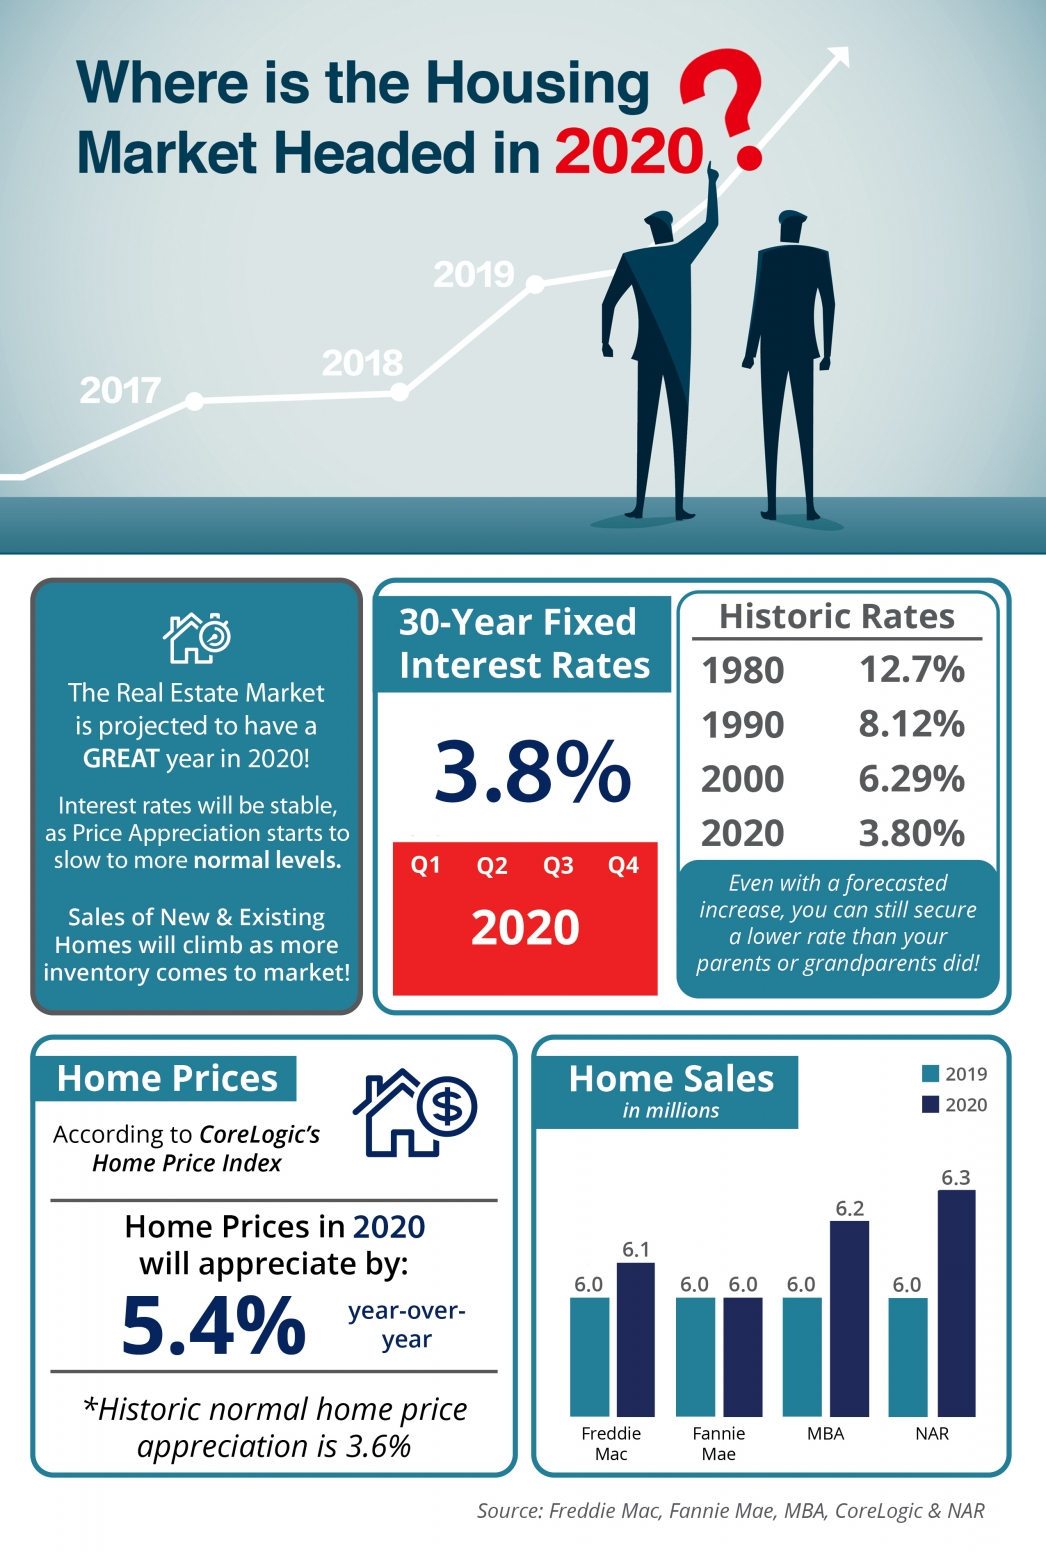 Where is the Housing Market Headed in 2020?